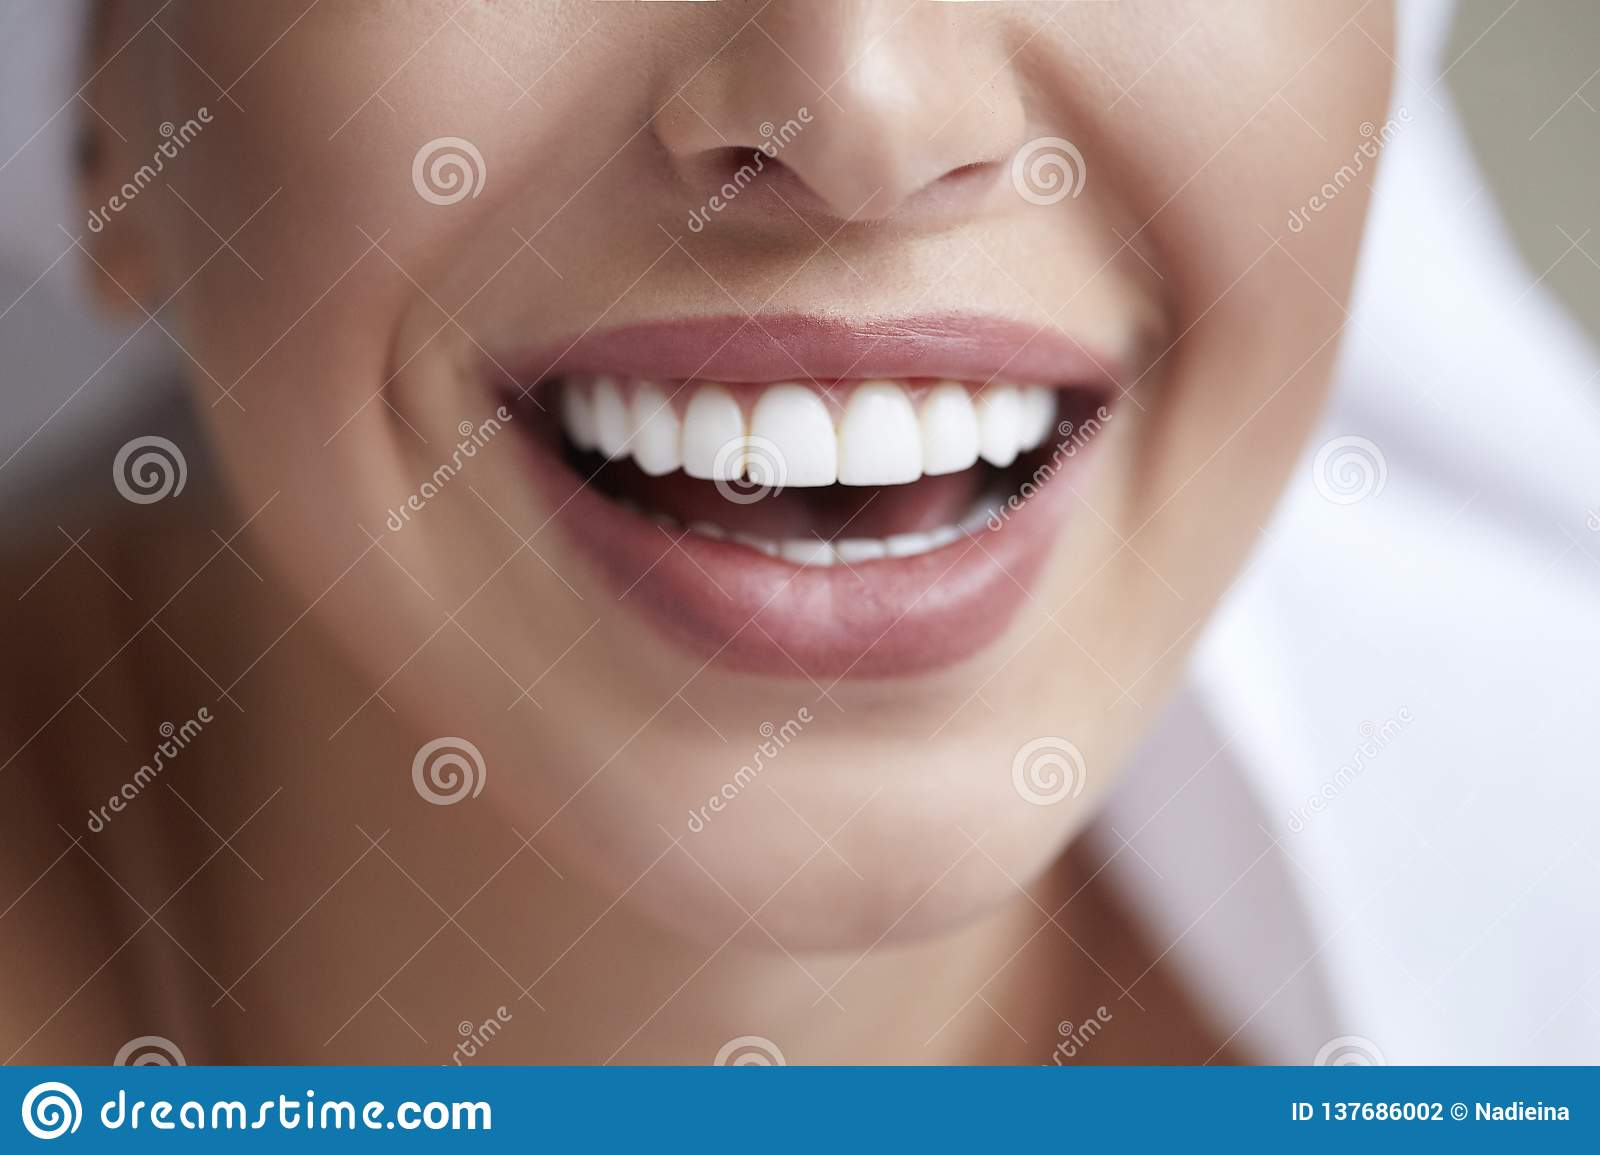 Healthy white smile close up. Beauty woman with perfect smile, lips and teeth. Beautiful Girl with perfect skin. Teeth whitening